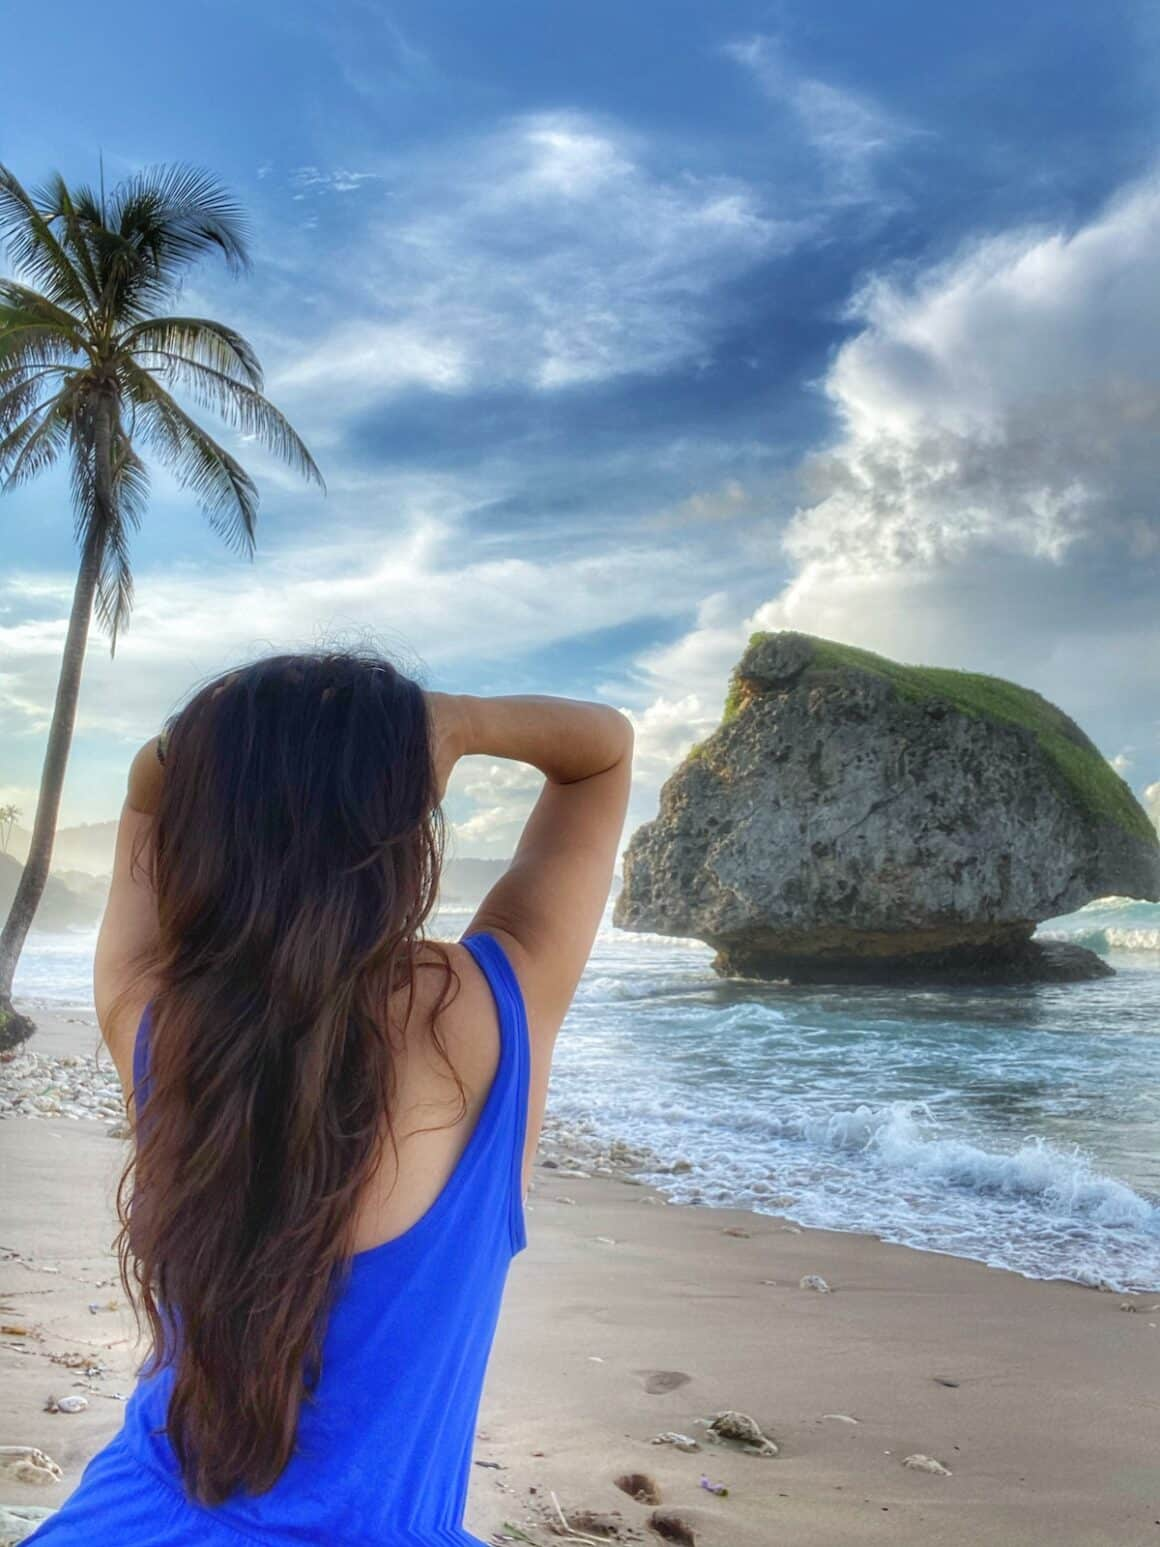 5 Helpful Tips for Achieving Your Best Healthy Life as a Woman - The Healthy Voyager